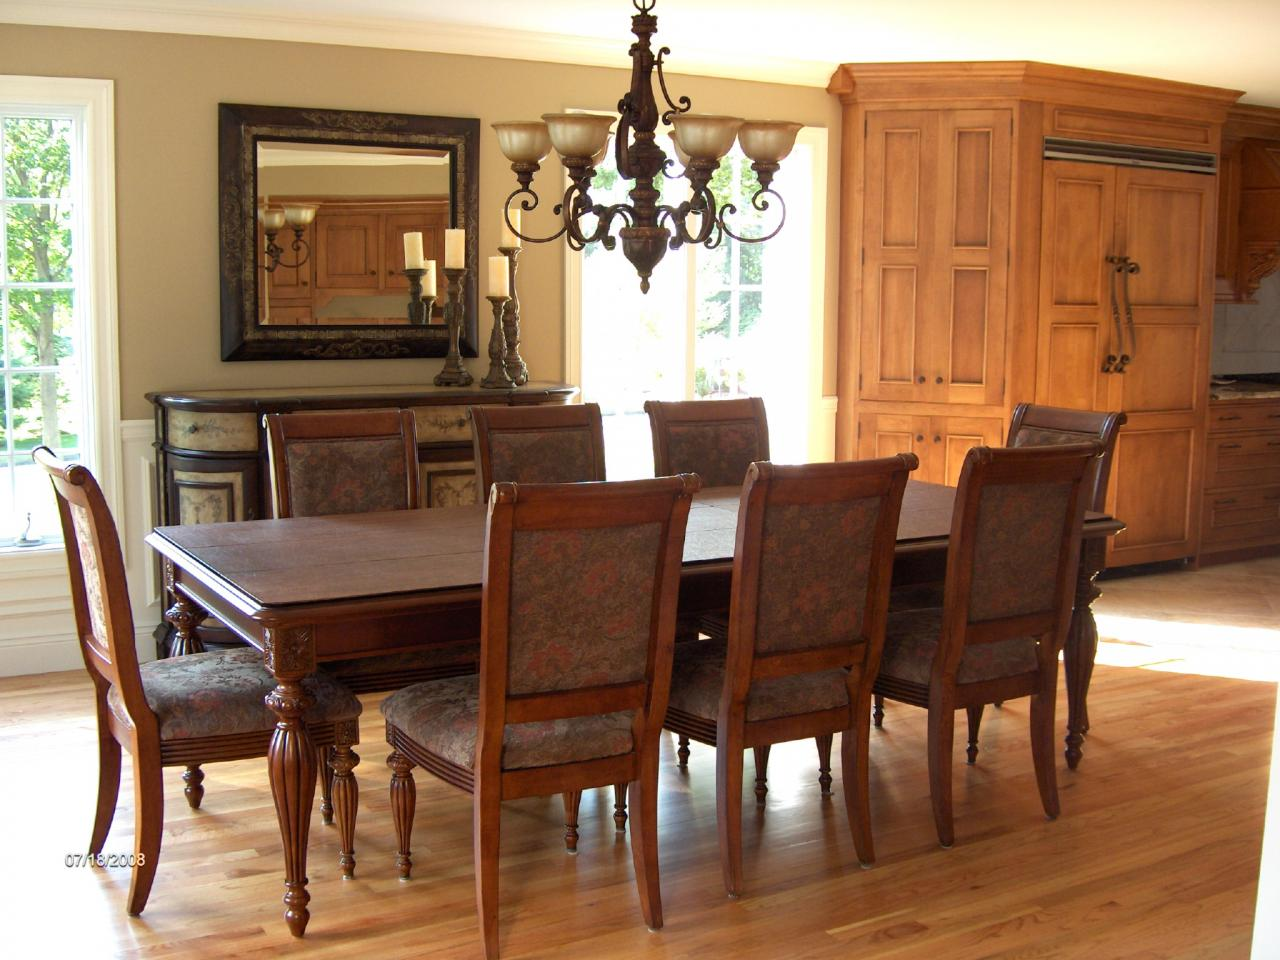 Elegant dining room sets home designer for Design a dining room table